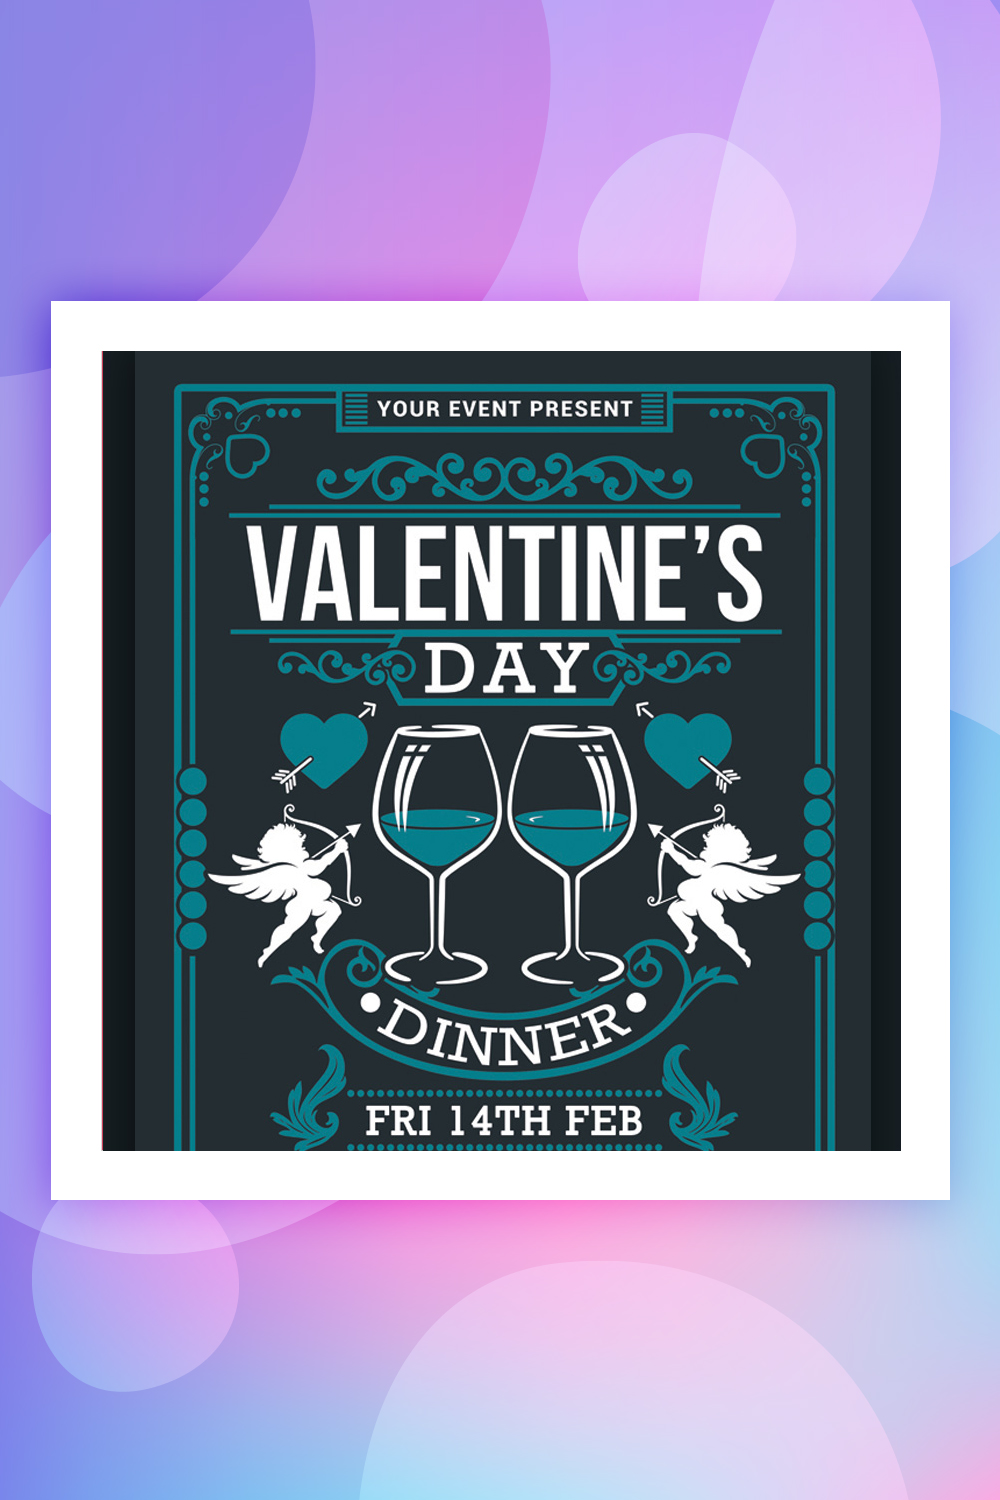 Valentine's Day Dinner Corporate Identity Template